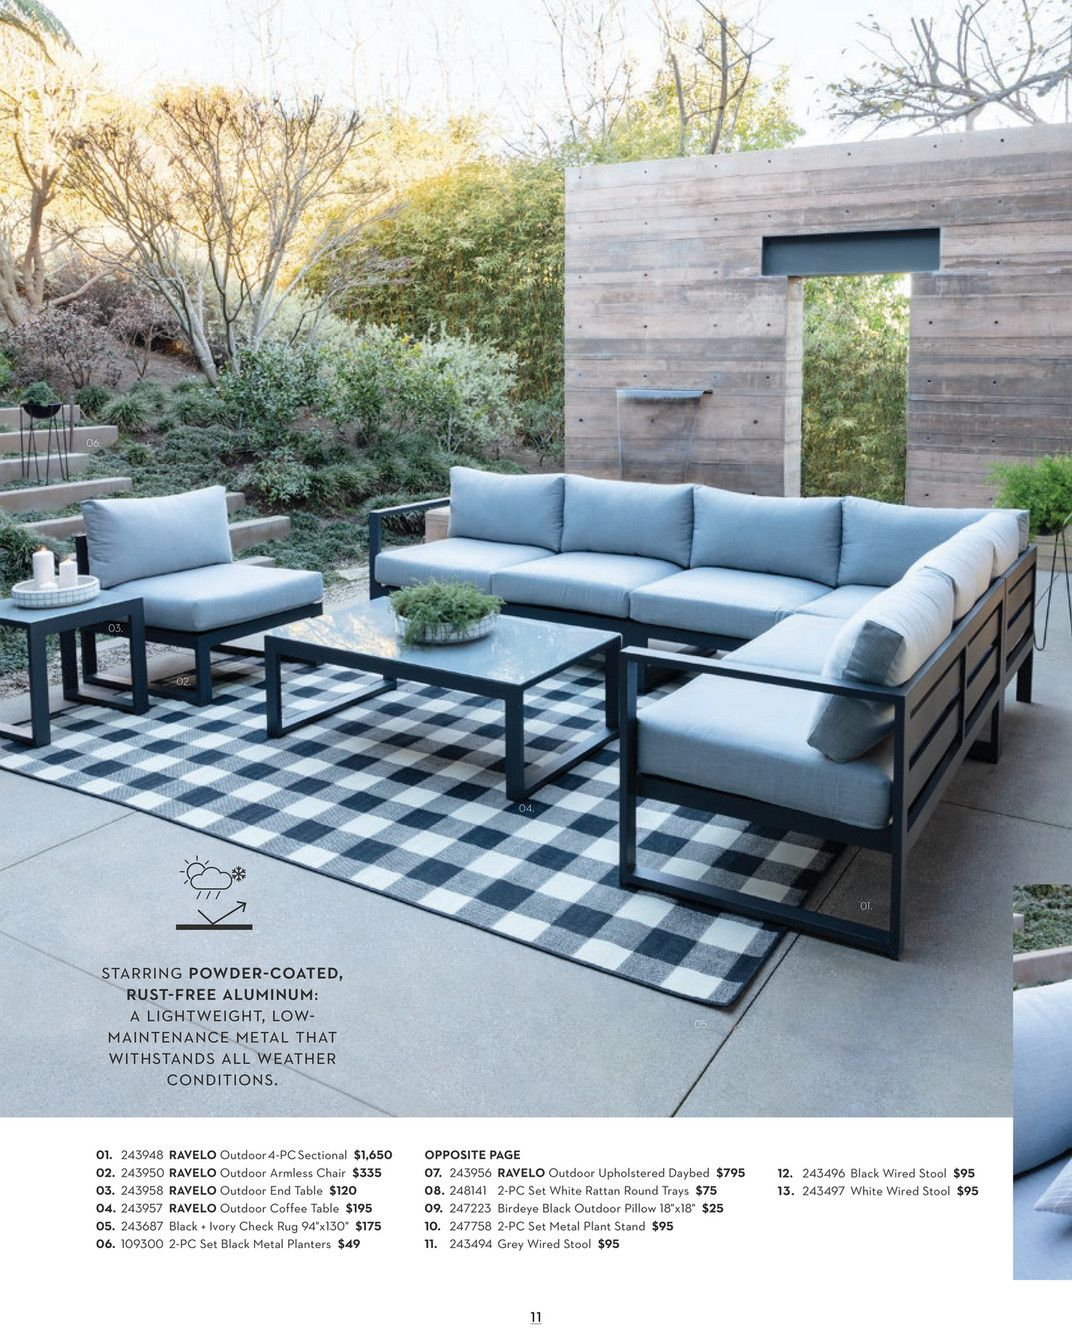 Living Spaces - Outdoor 2019 - Page 12-13 | Living spaces ... on Living Spaces Outdoor Daybed id=72234